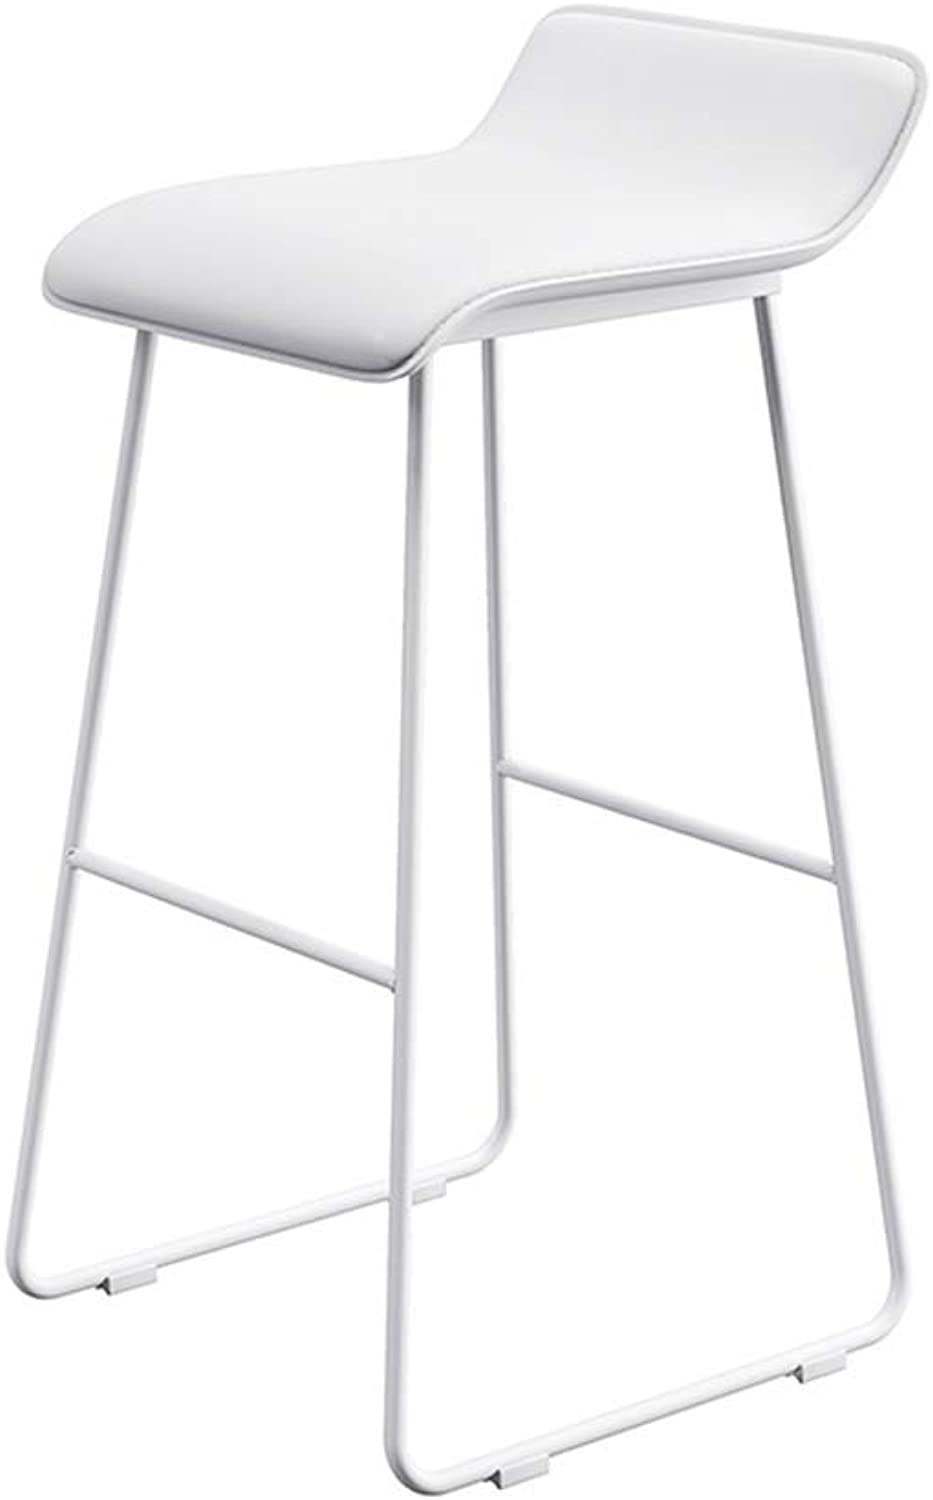 Aidriney- Bar stool, Coffee Lounge Stool, Wrought Iron Padded bar Chair, 5 colors, Size  65 cm   70 cm   75 cm (color   B, Size   L)